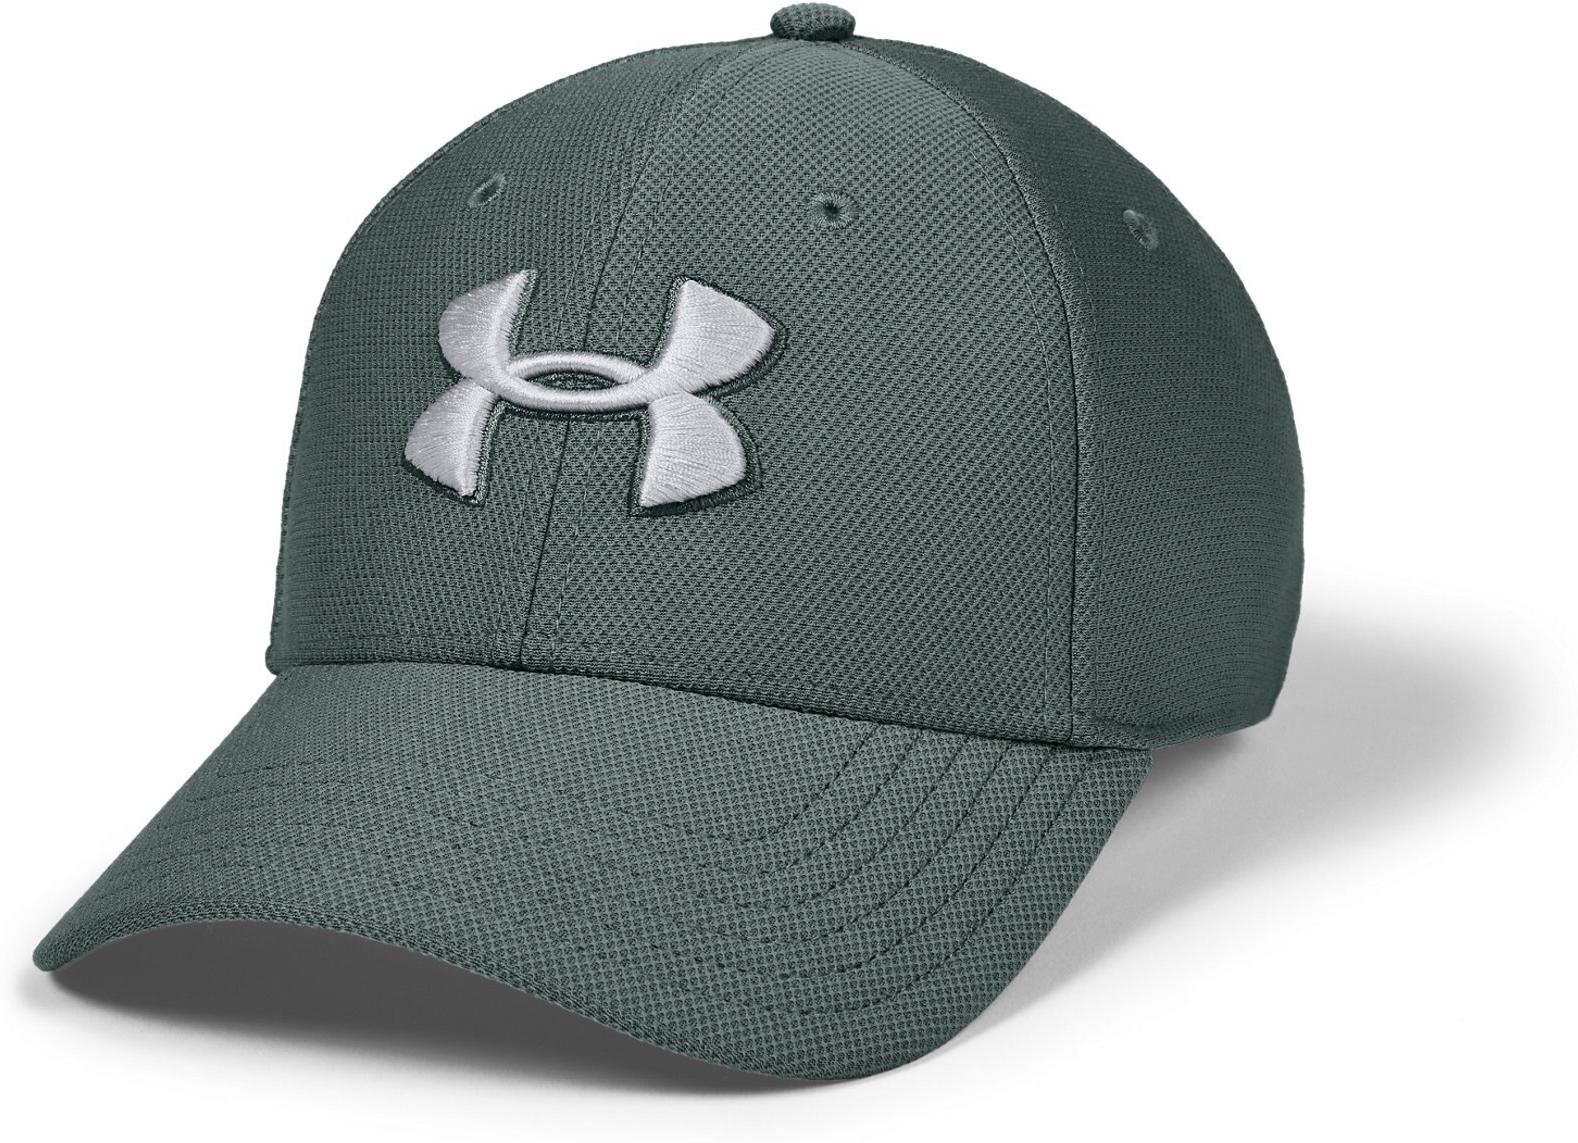 Šiltovka Under Armour UA Men s Blitzing 3.0 Cap